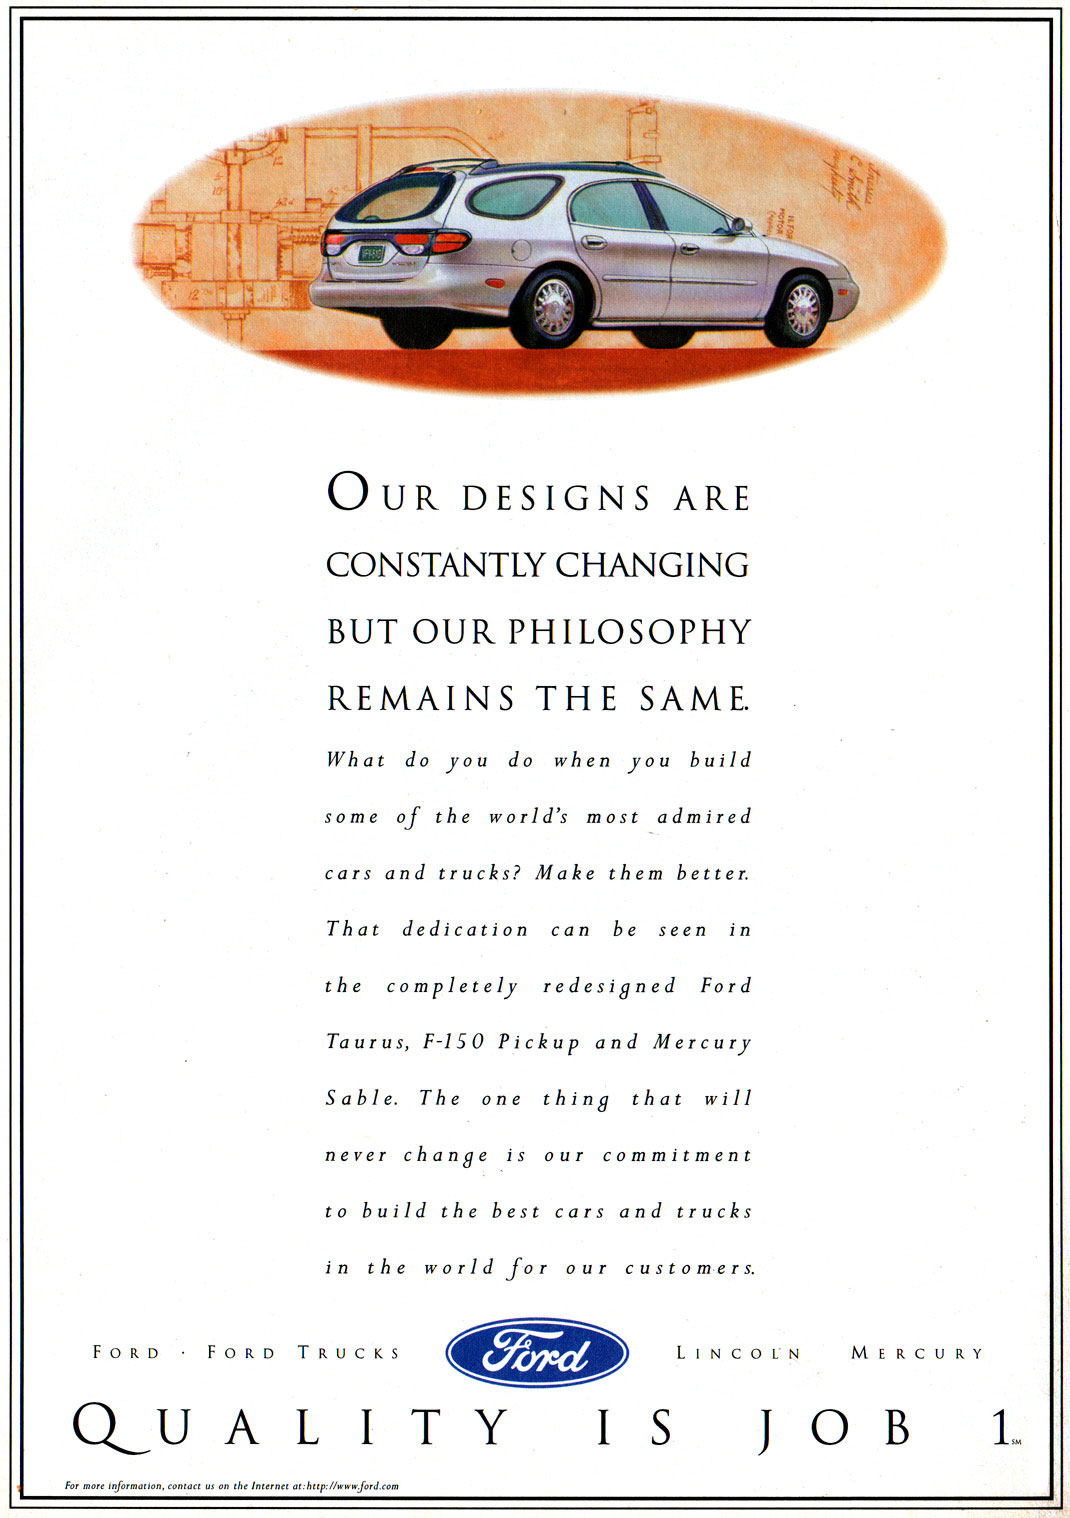 OUR DESIGNS ARE CONSTANTLY CHANGING BUT OUR PHILOSOPHY REMAINS THE SAME.  What do you do when you build some of the world's most admired cars and trucks? Make them better. That dedication can be seen in the completely redesigned Ford Taurus, F-150 Pickup and Mercury Sable. The one thing that will never change is our commitment to build the best cars and trucks in the world for our customers.  FORD FORD TRUCKS LINCOLN MERCURY  QUALITY  For more Inforrnotwn, contact us on the Internet at:httingownford.com  IS JOB